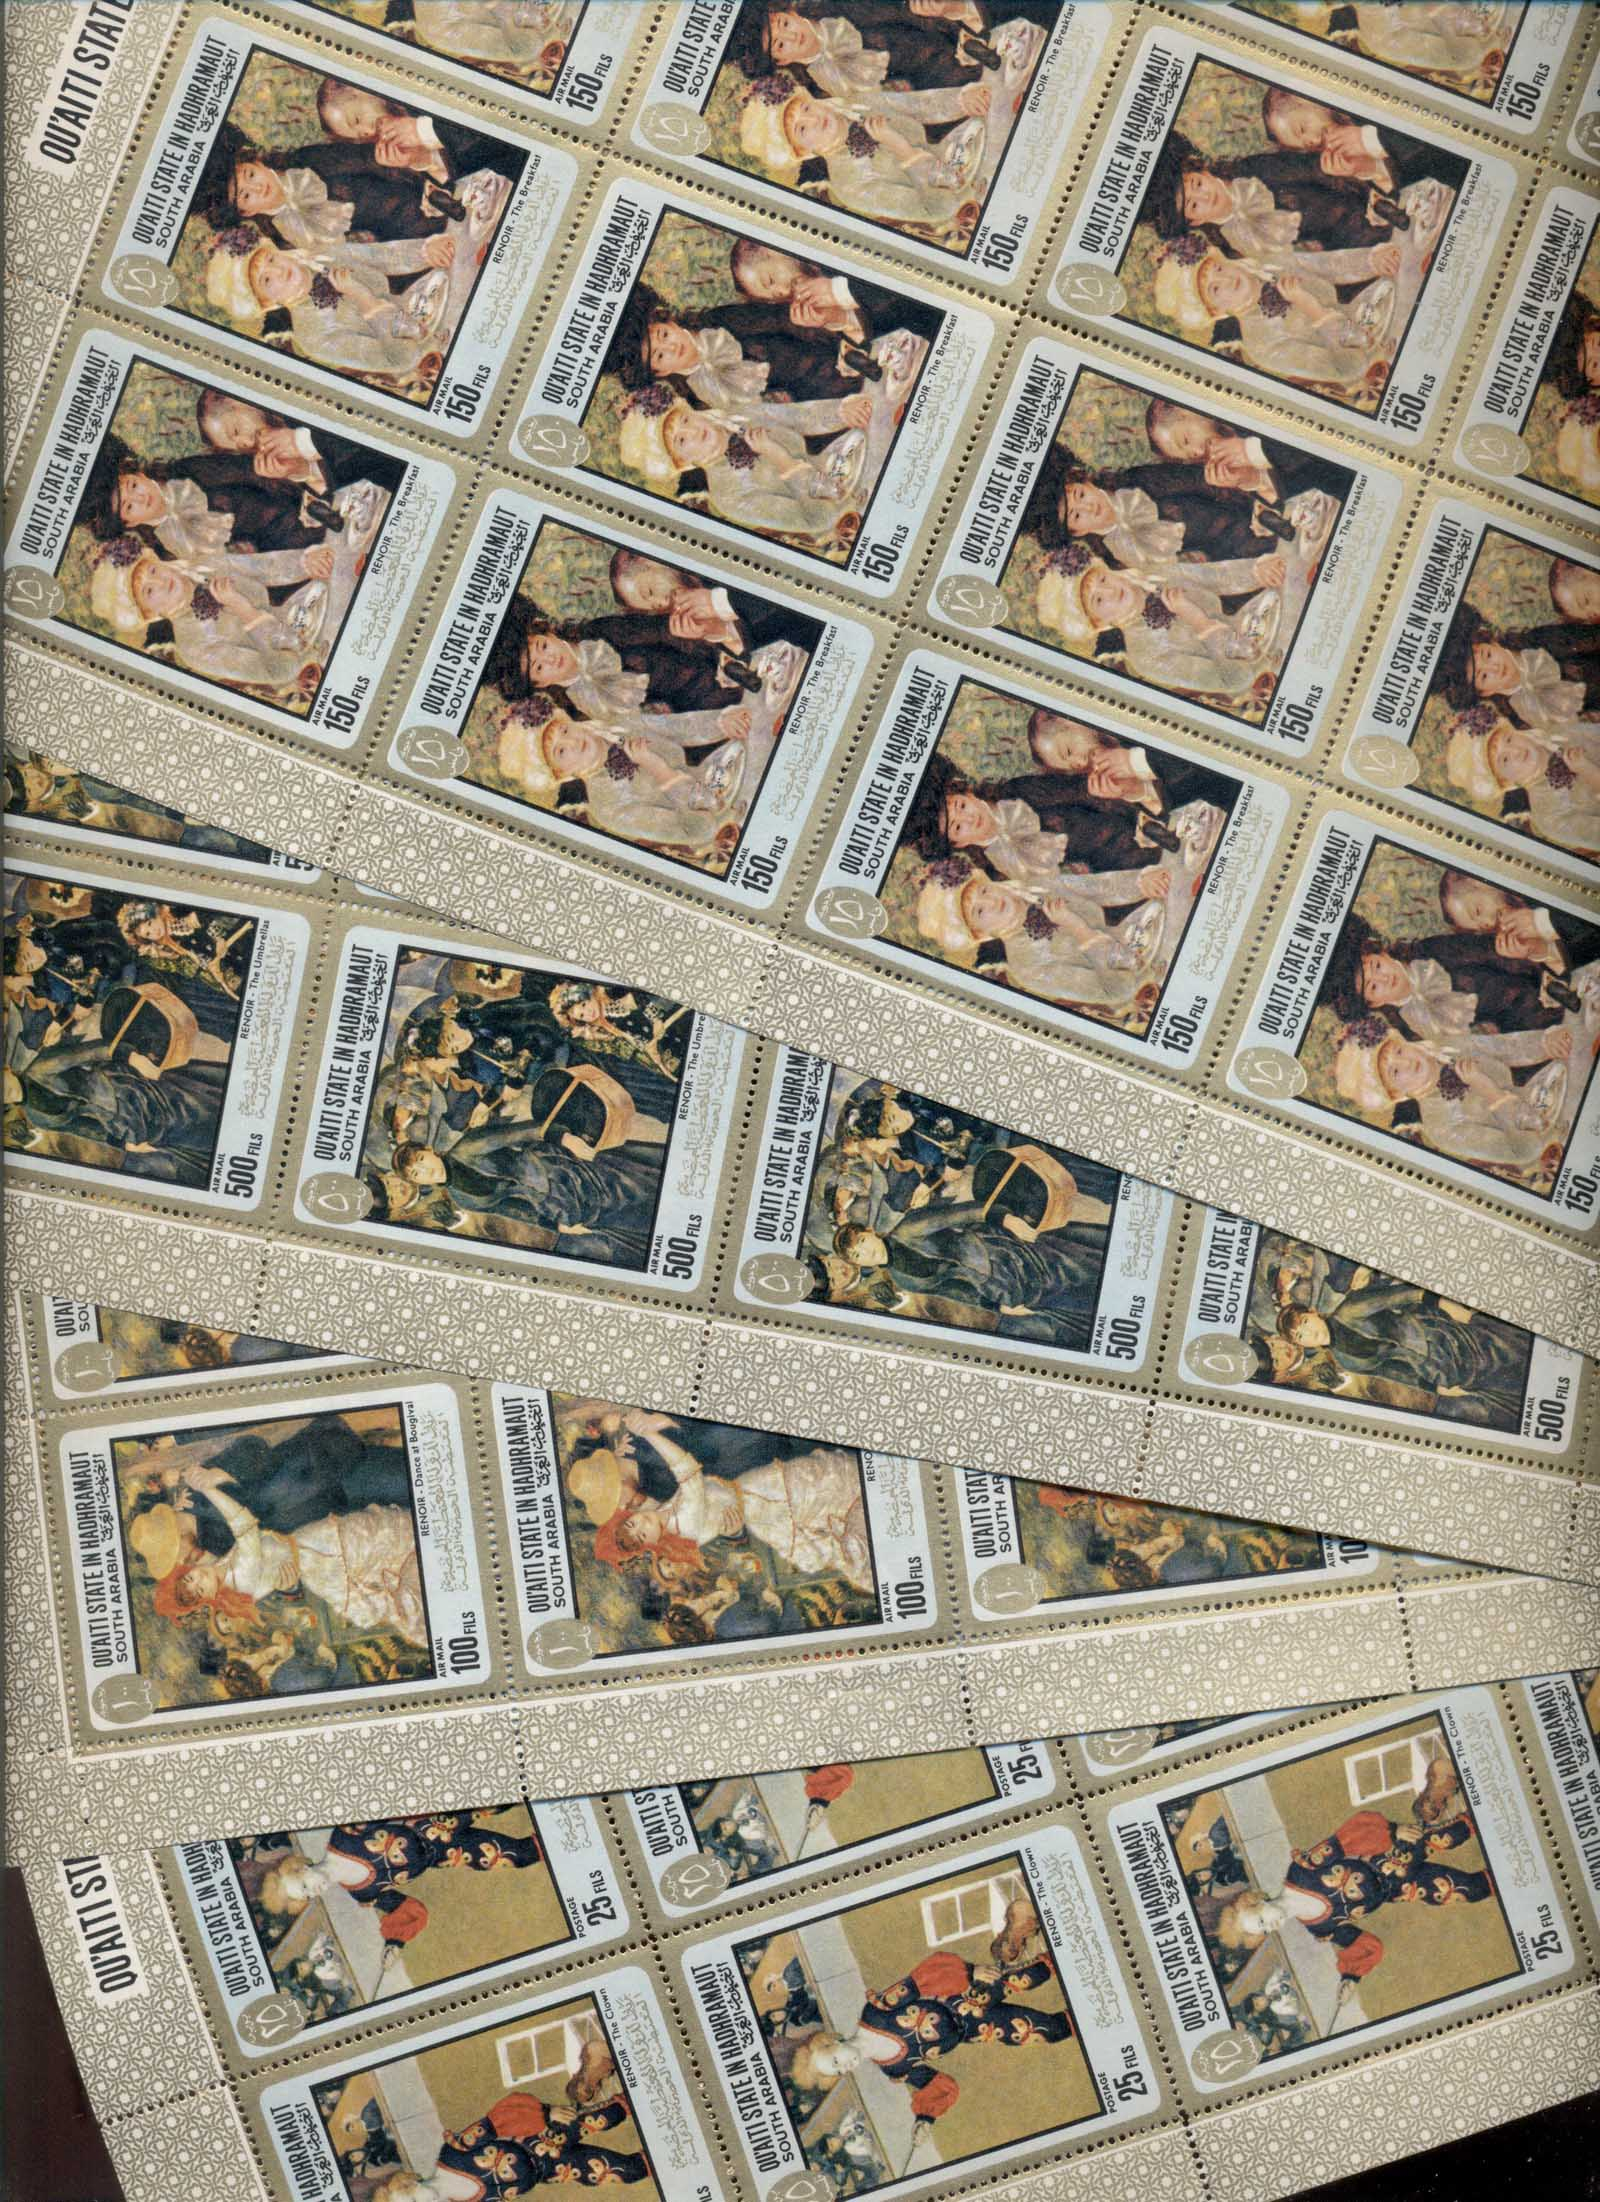 Aden Qu'aiti State in Hadhramaut 1967 Mi#142-145 Paintings by Renoir sheets (folded) MUH